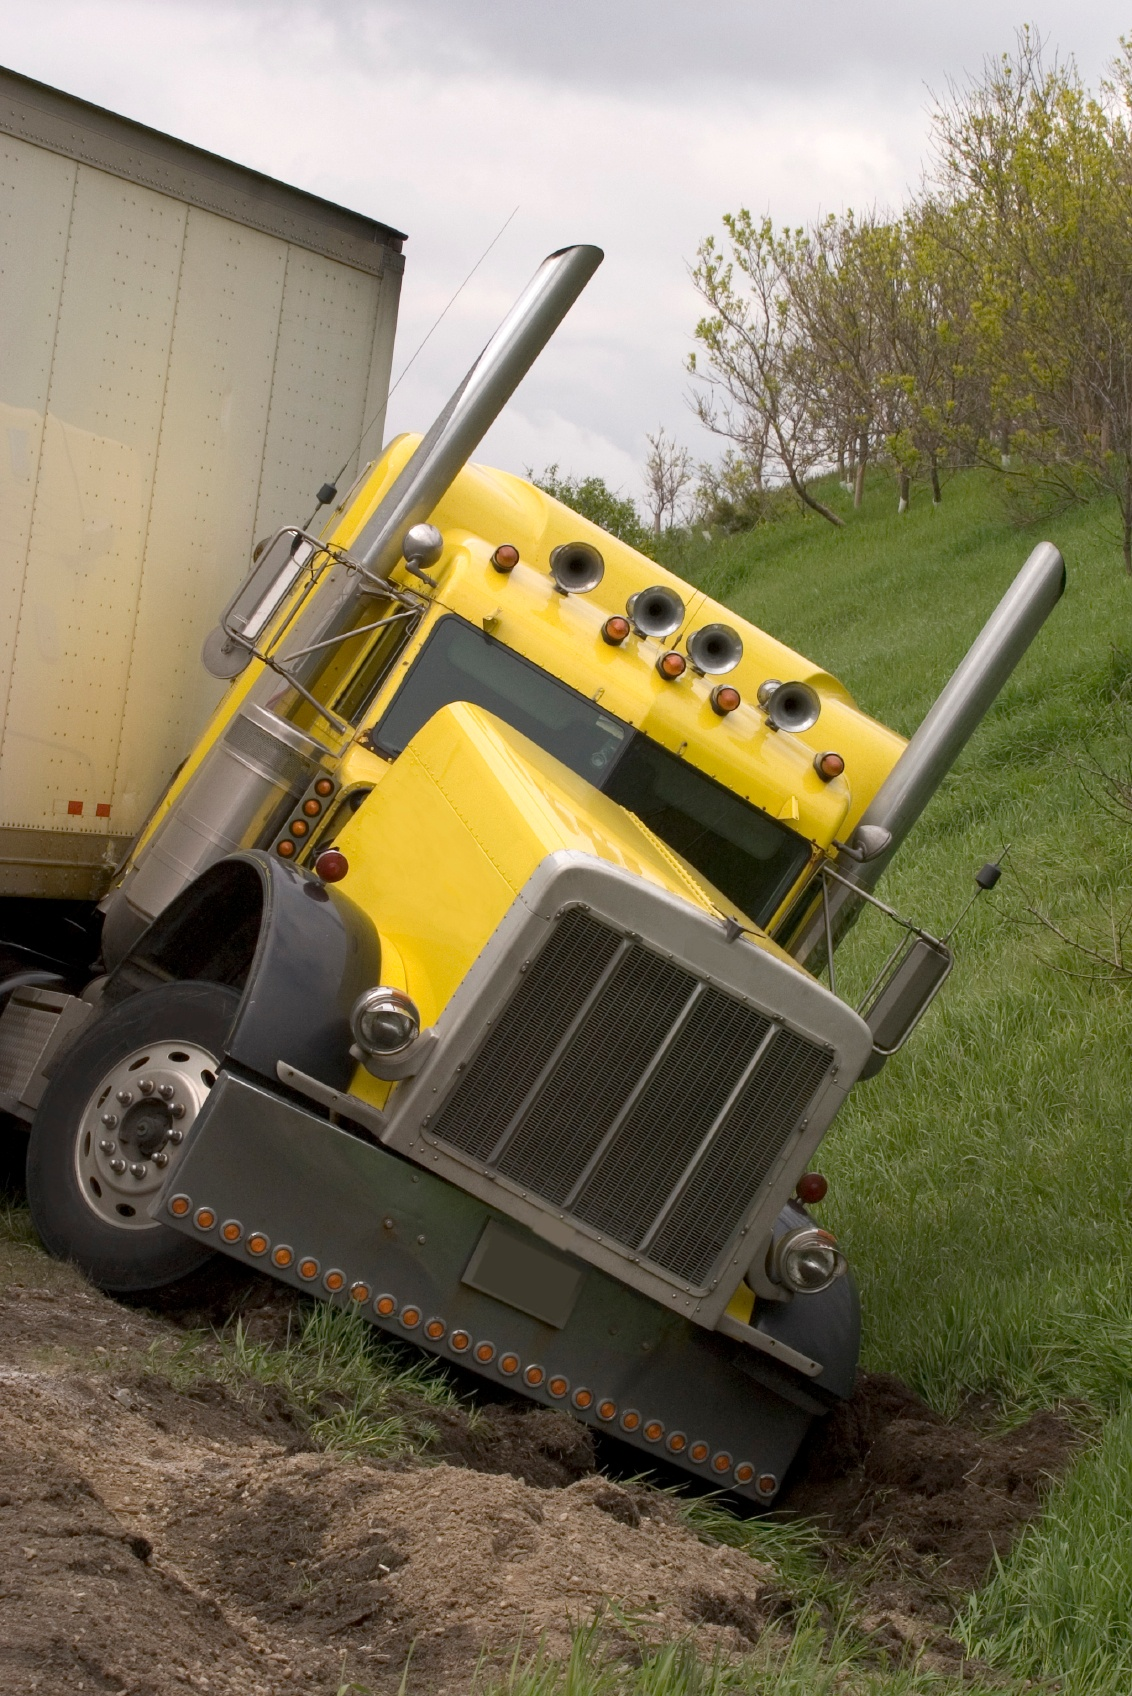 Truck Accident Injury Lawyer in Atlanta